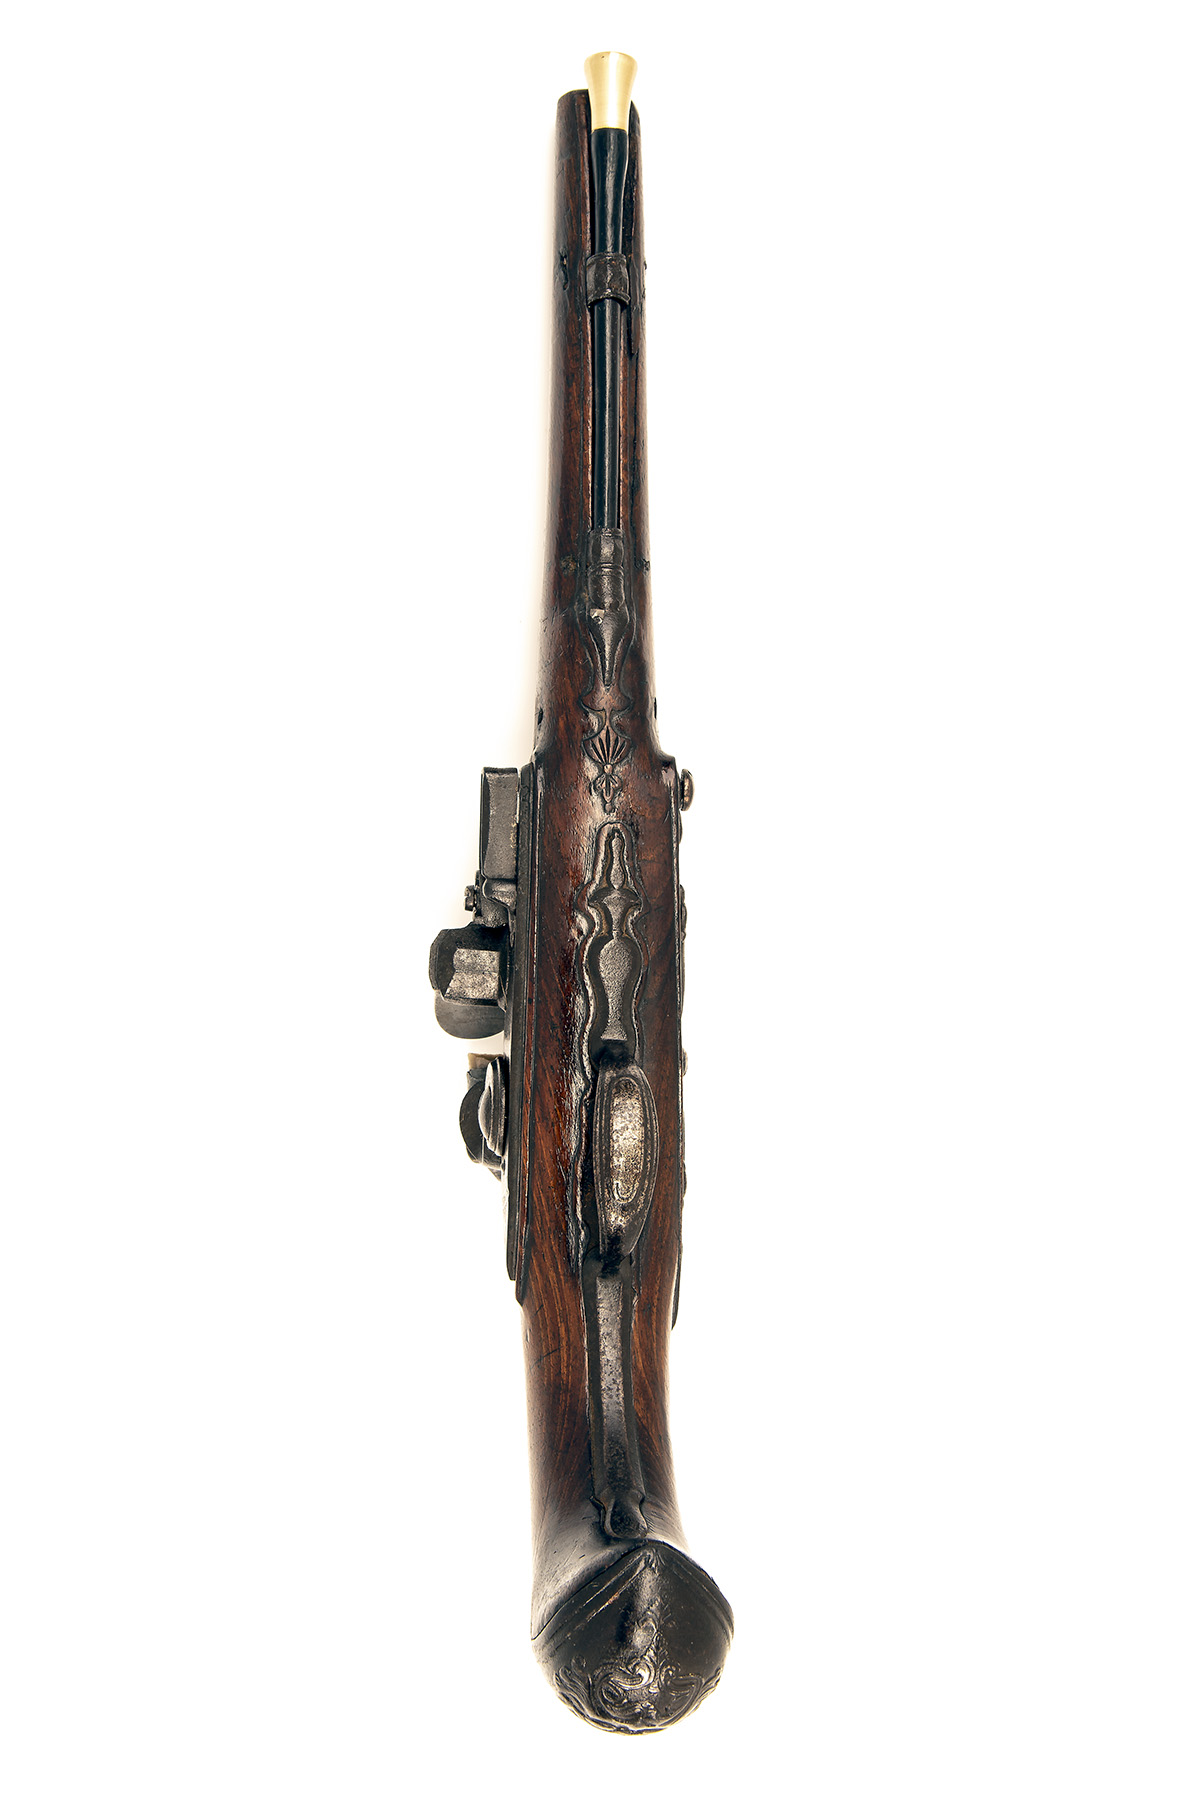 A 22-BORE FLINTLOCK HORSE-PISTOL, UNSIGNED, no visible serial number, German or Bohemian circa 1775, - Image 3 of 7